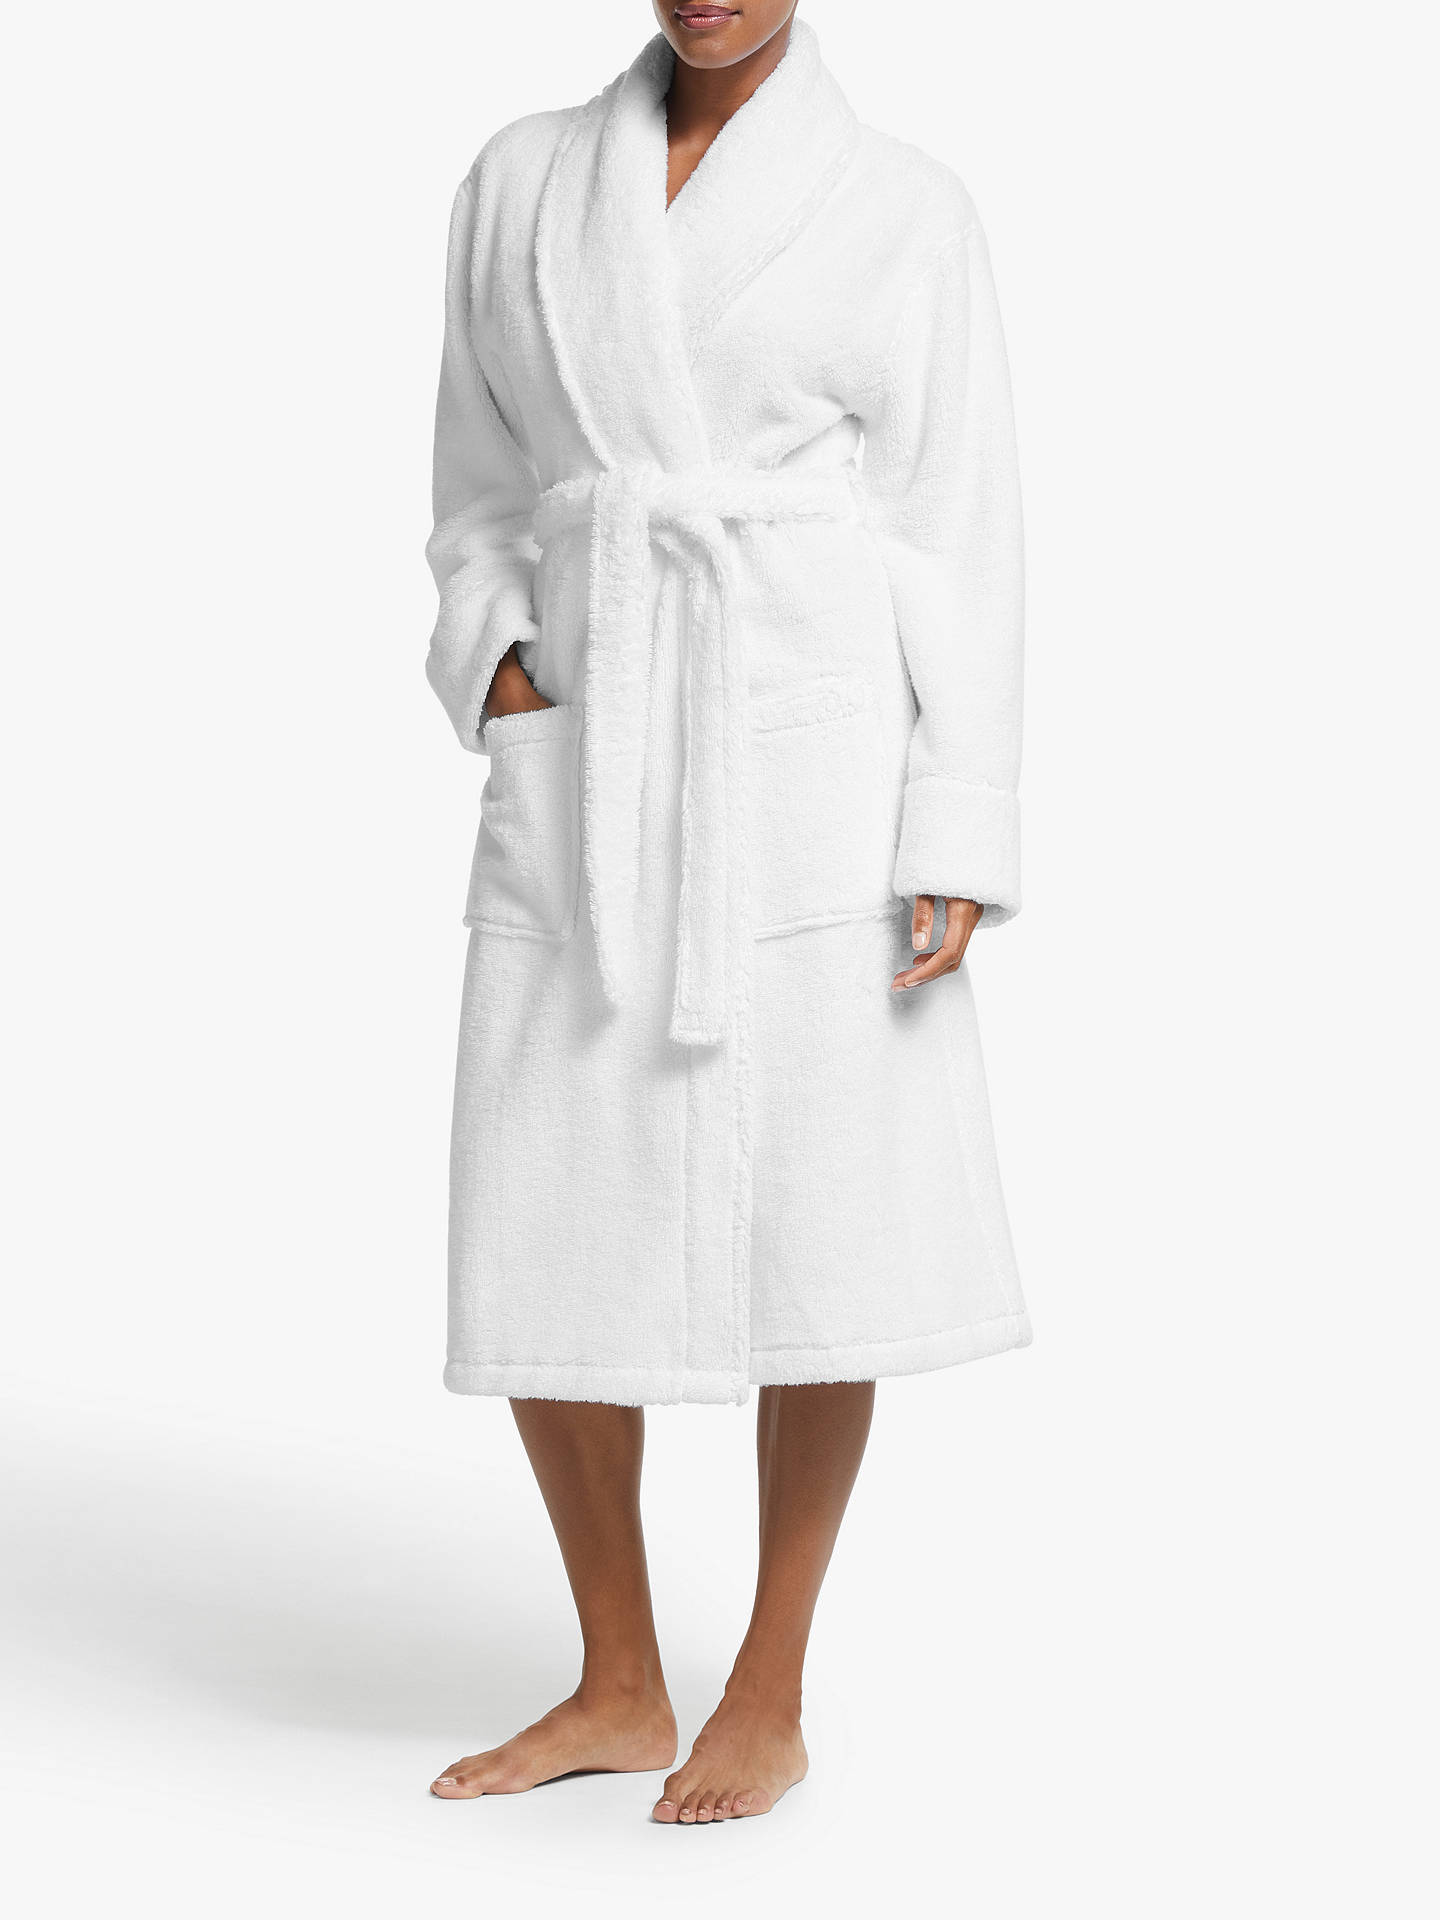 John Lewis & Partners Luxury Towelling Robe at John Lewis & Partners